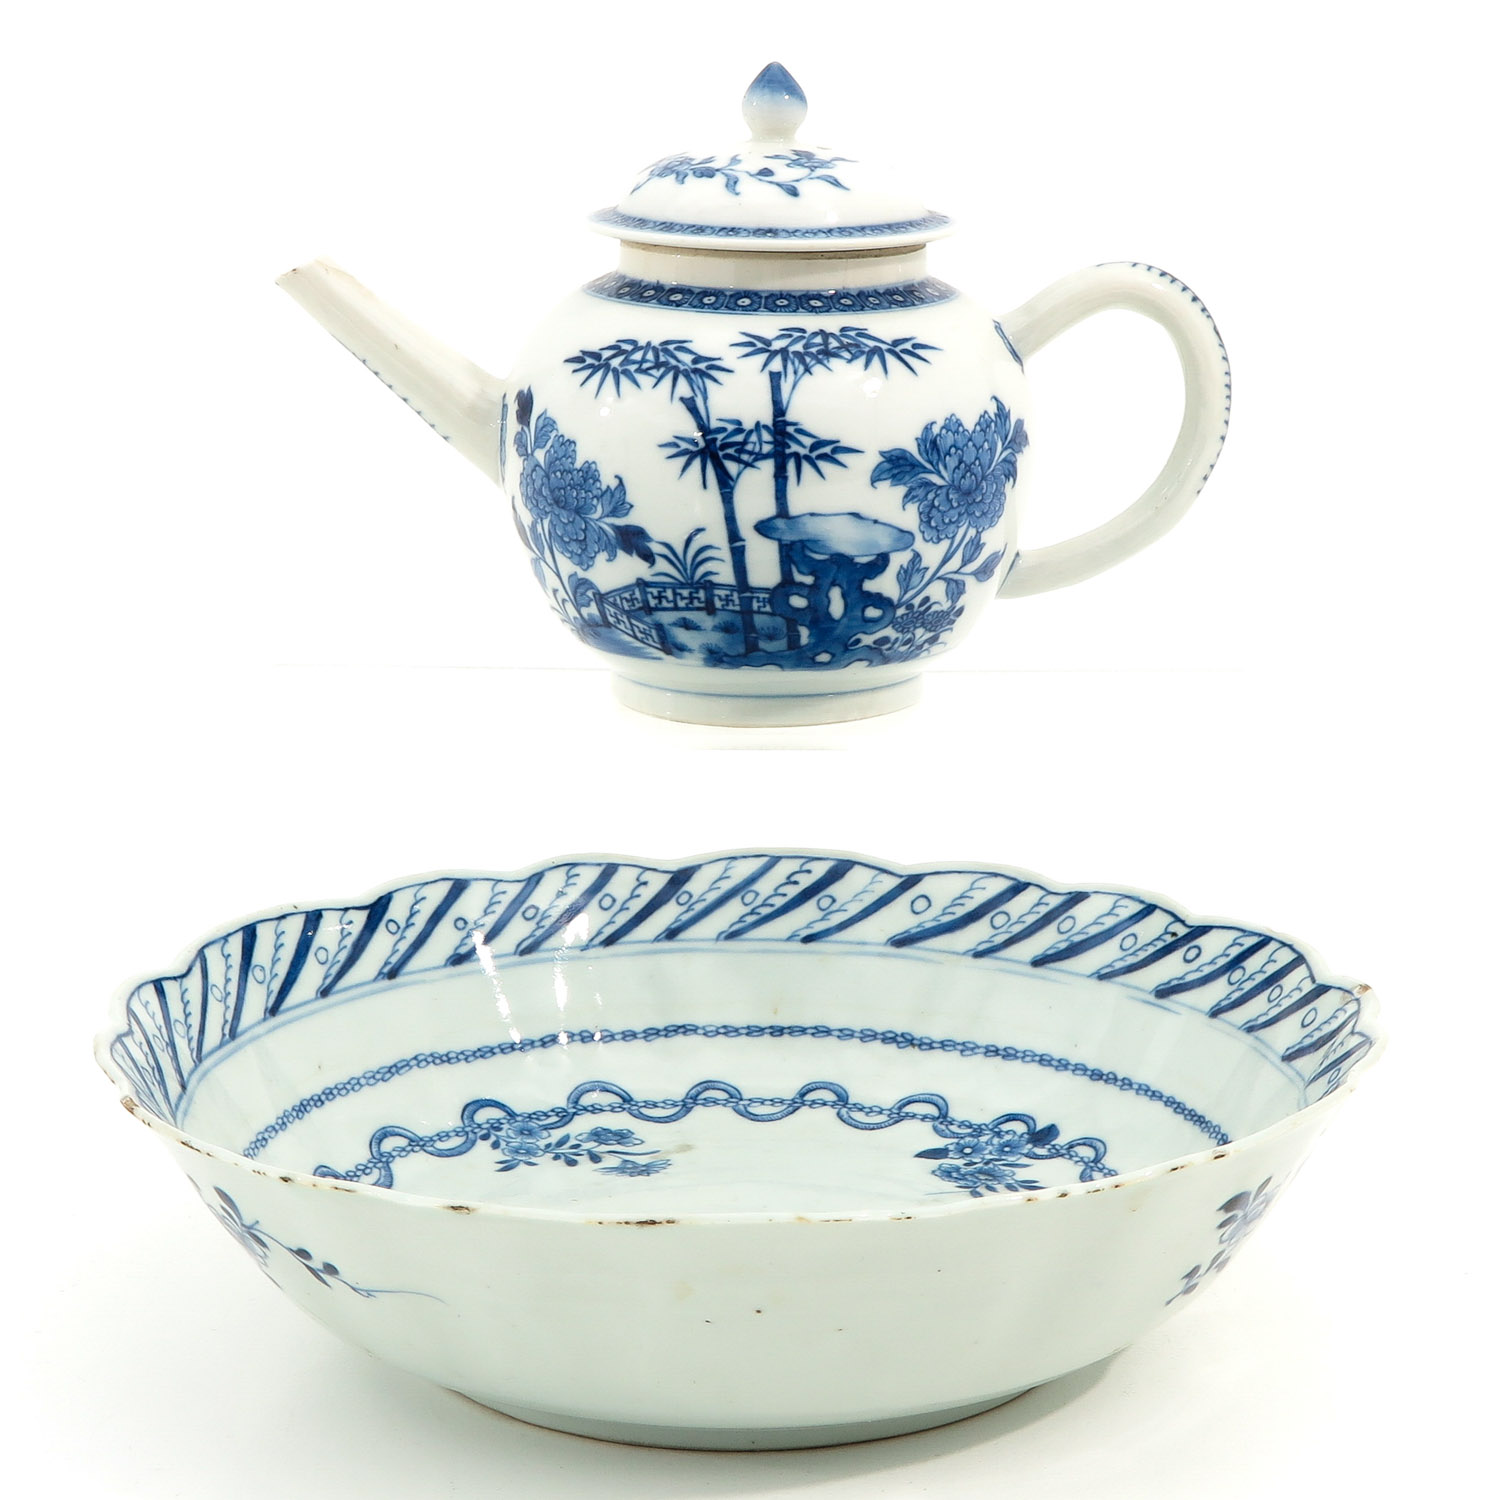 A Blue and White Bowl and Teapot